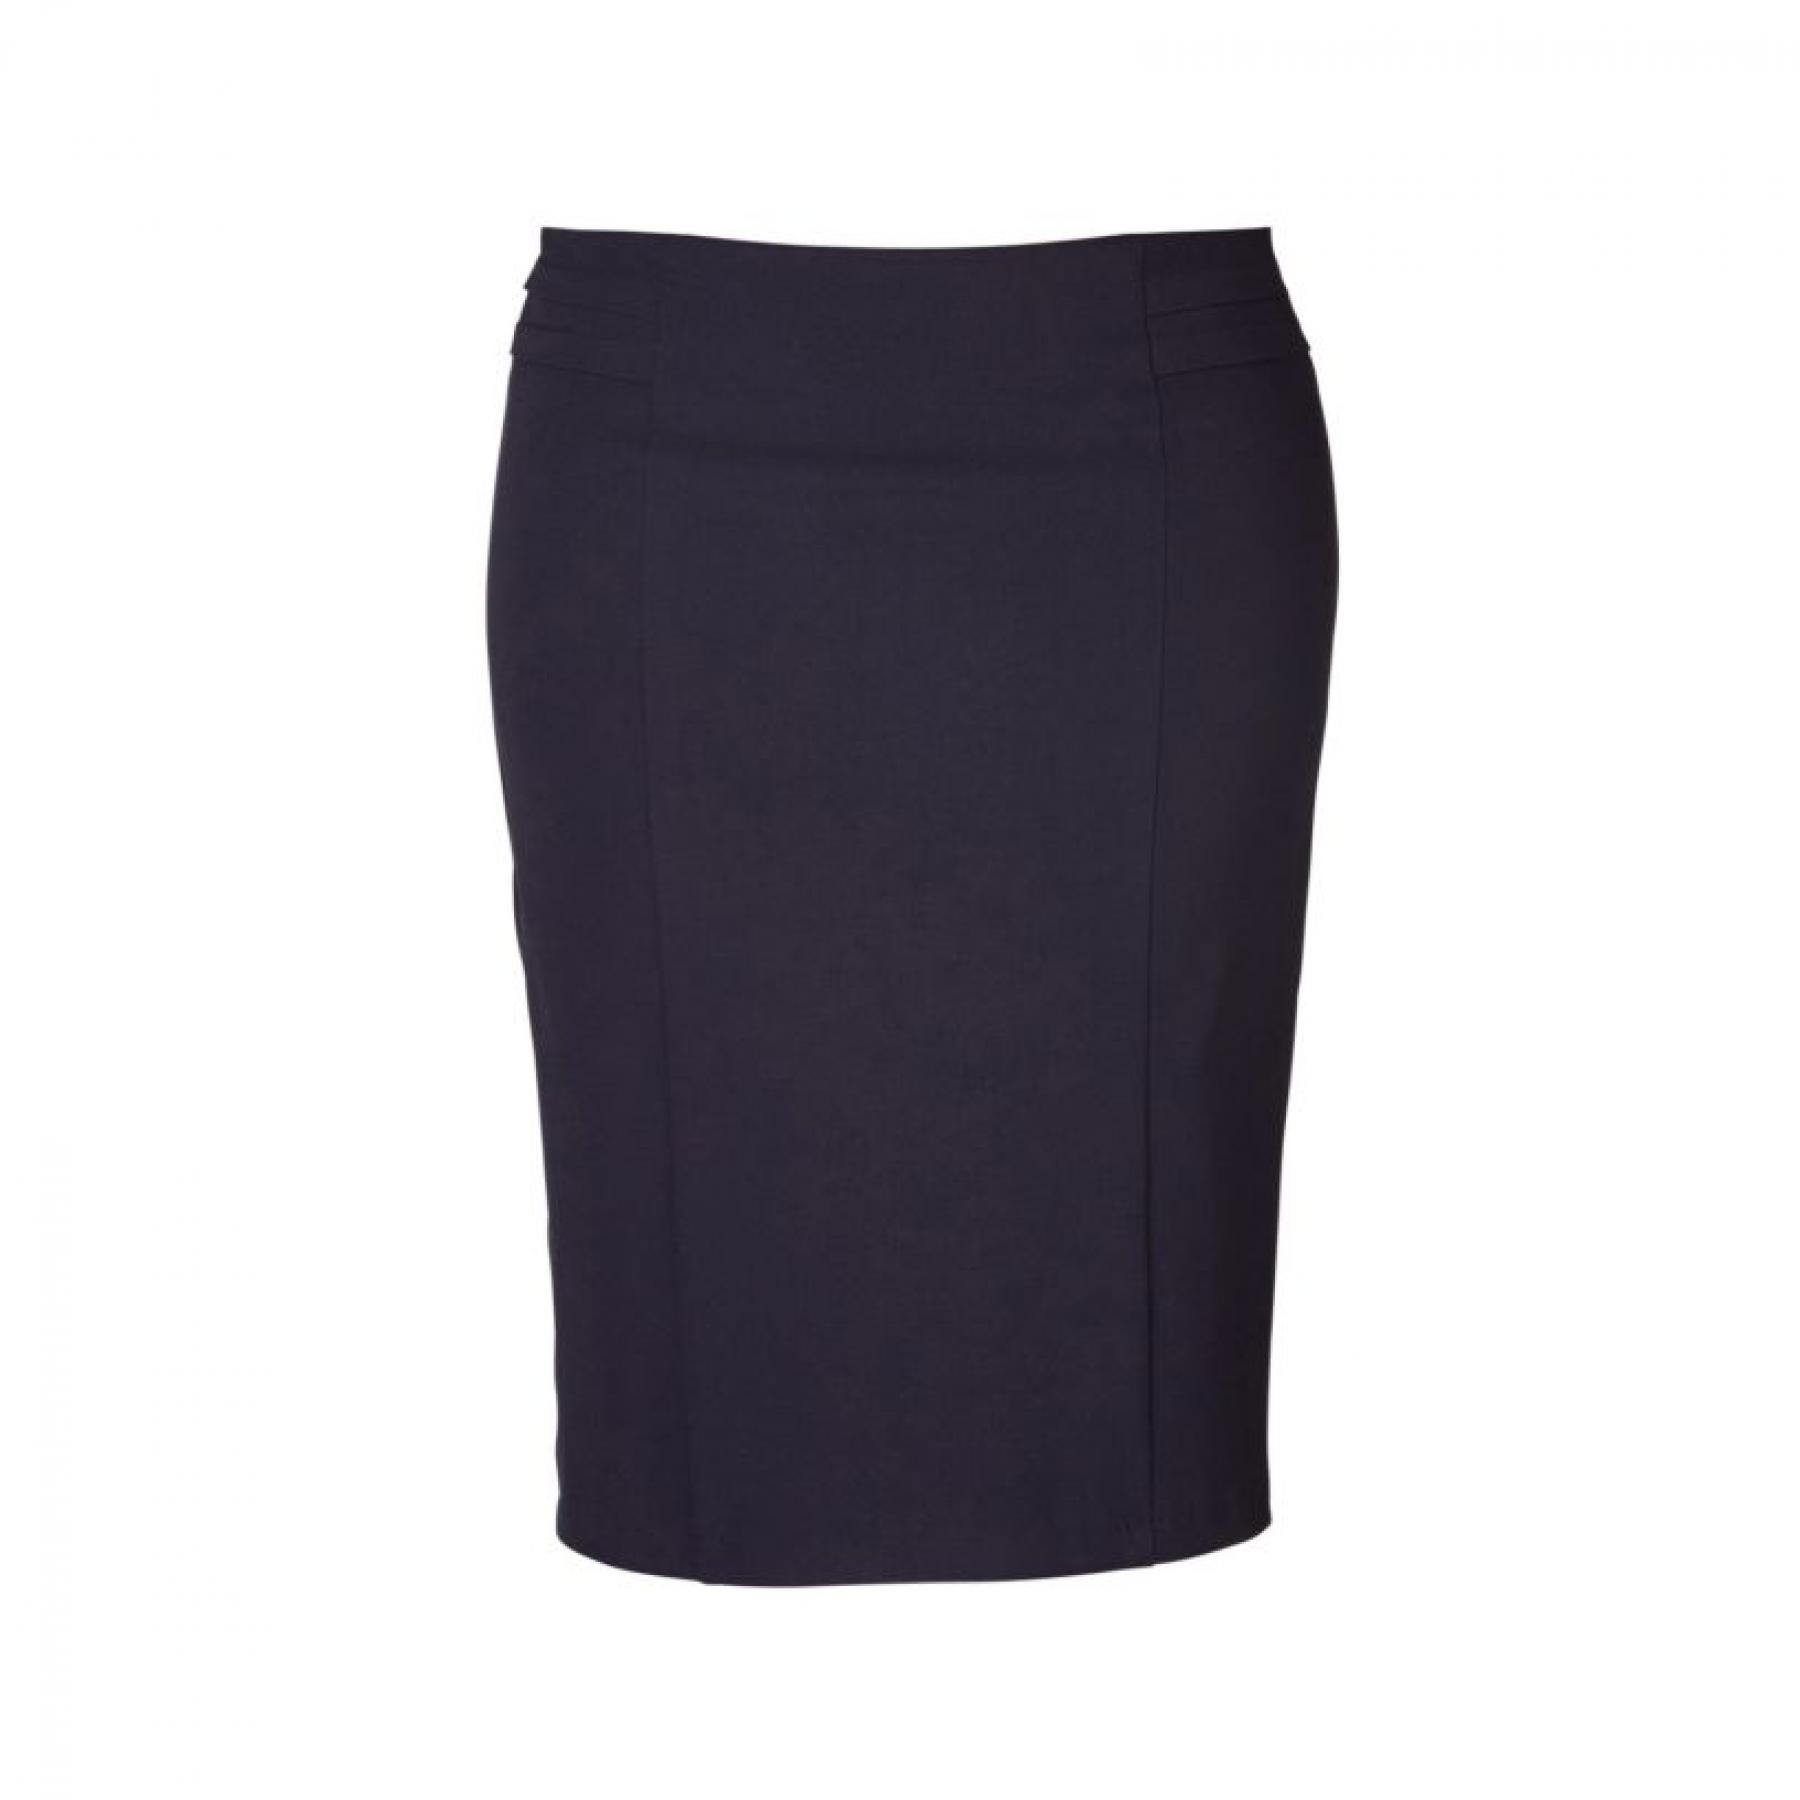 Sonya 505 Pencil Skirt - Navy